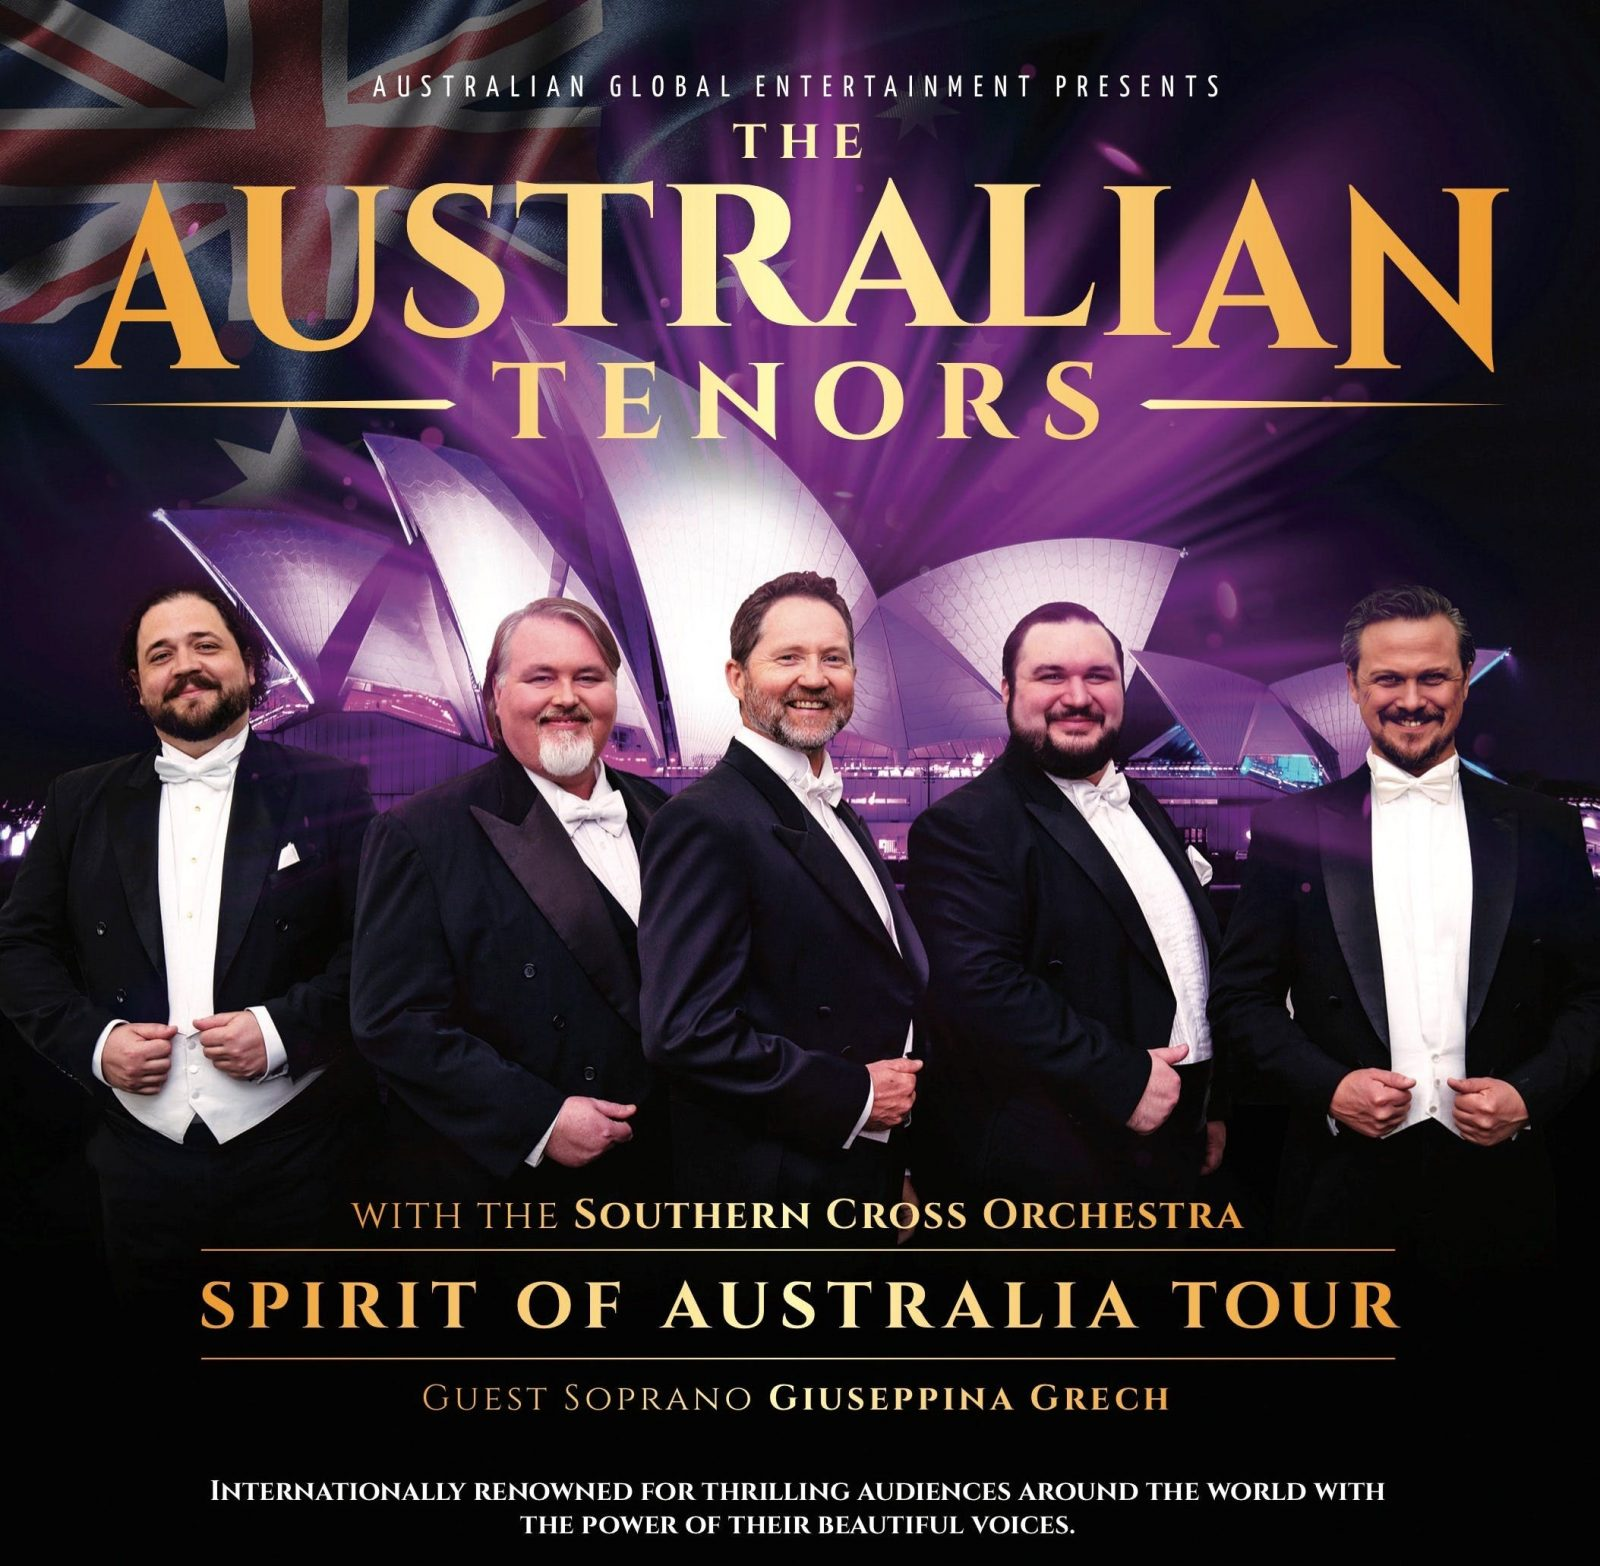 The Australian Tenors - The Art House